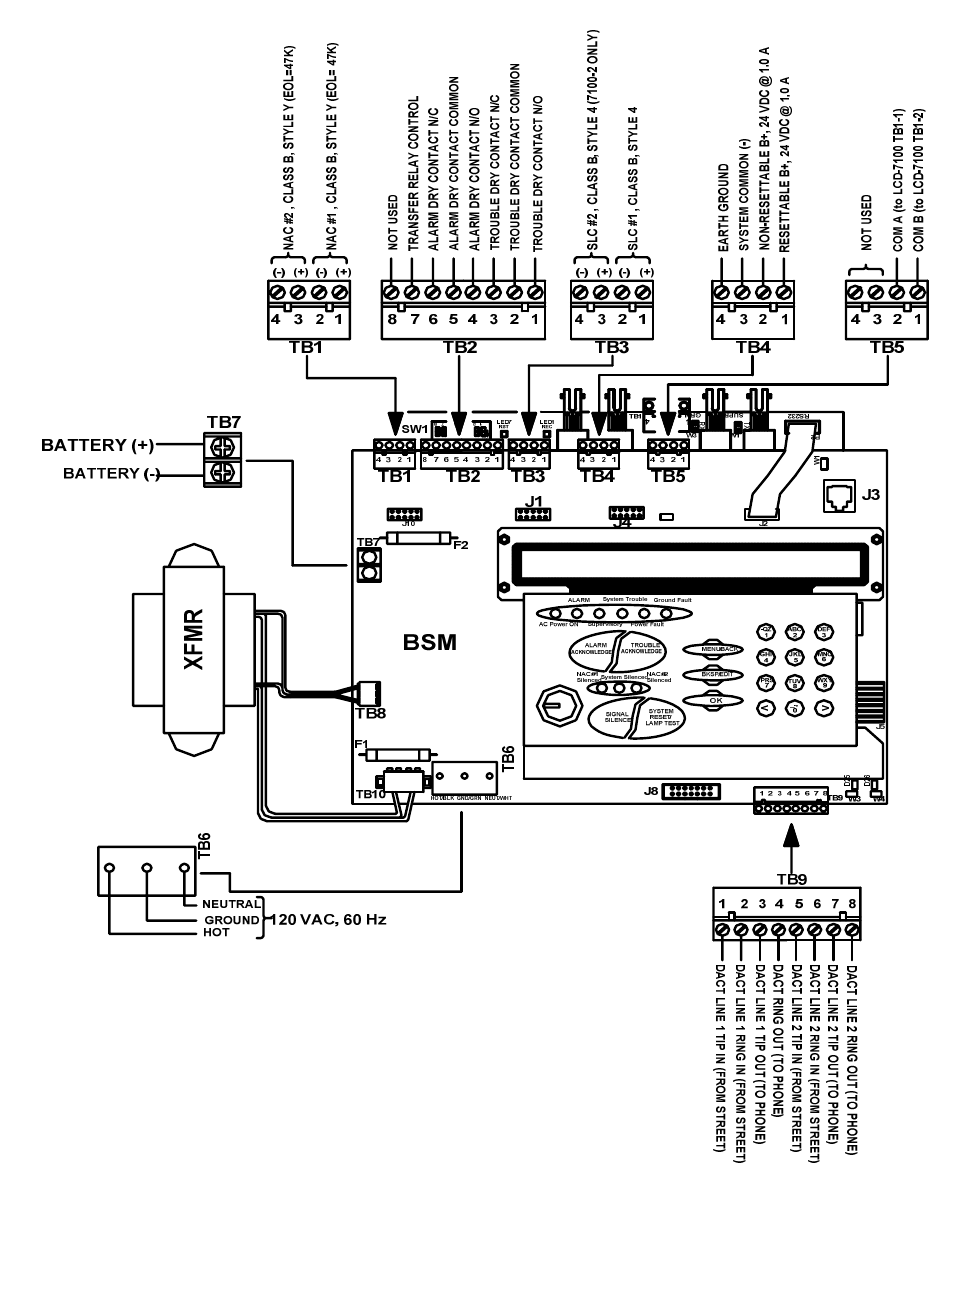 Dact Wiring Diagram Data Gfci In Series Schema Diagrams Outlets